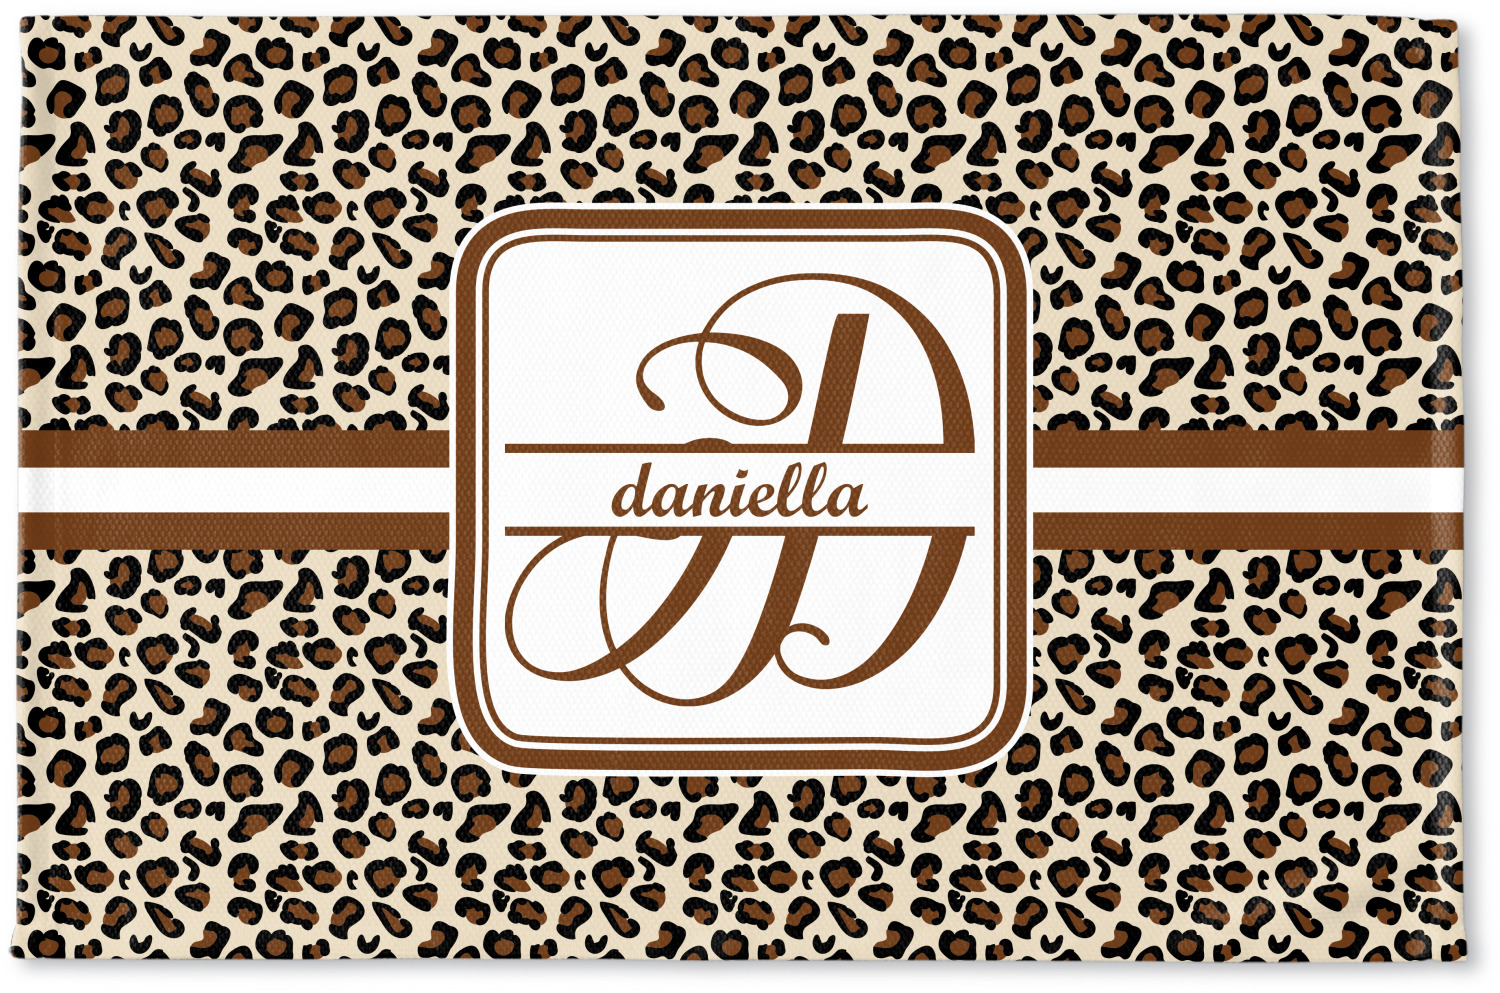 Leopard print woven mat personalized youcustomizeit for Floor prints